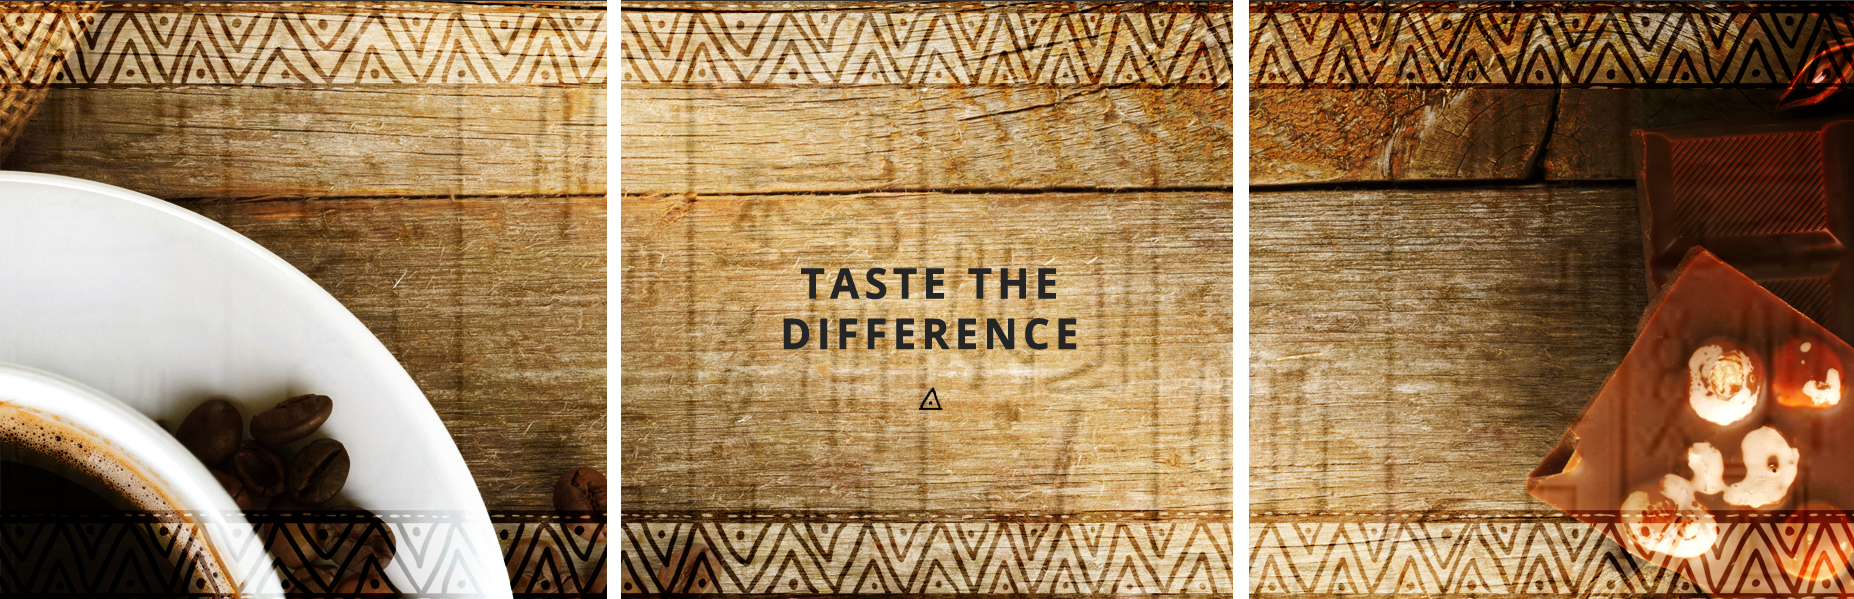 Taste The Difference width=